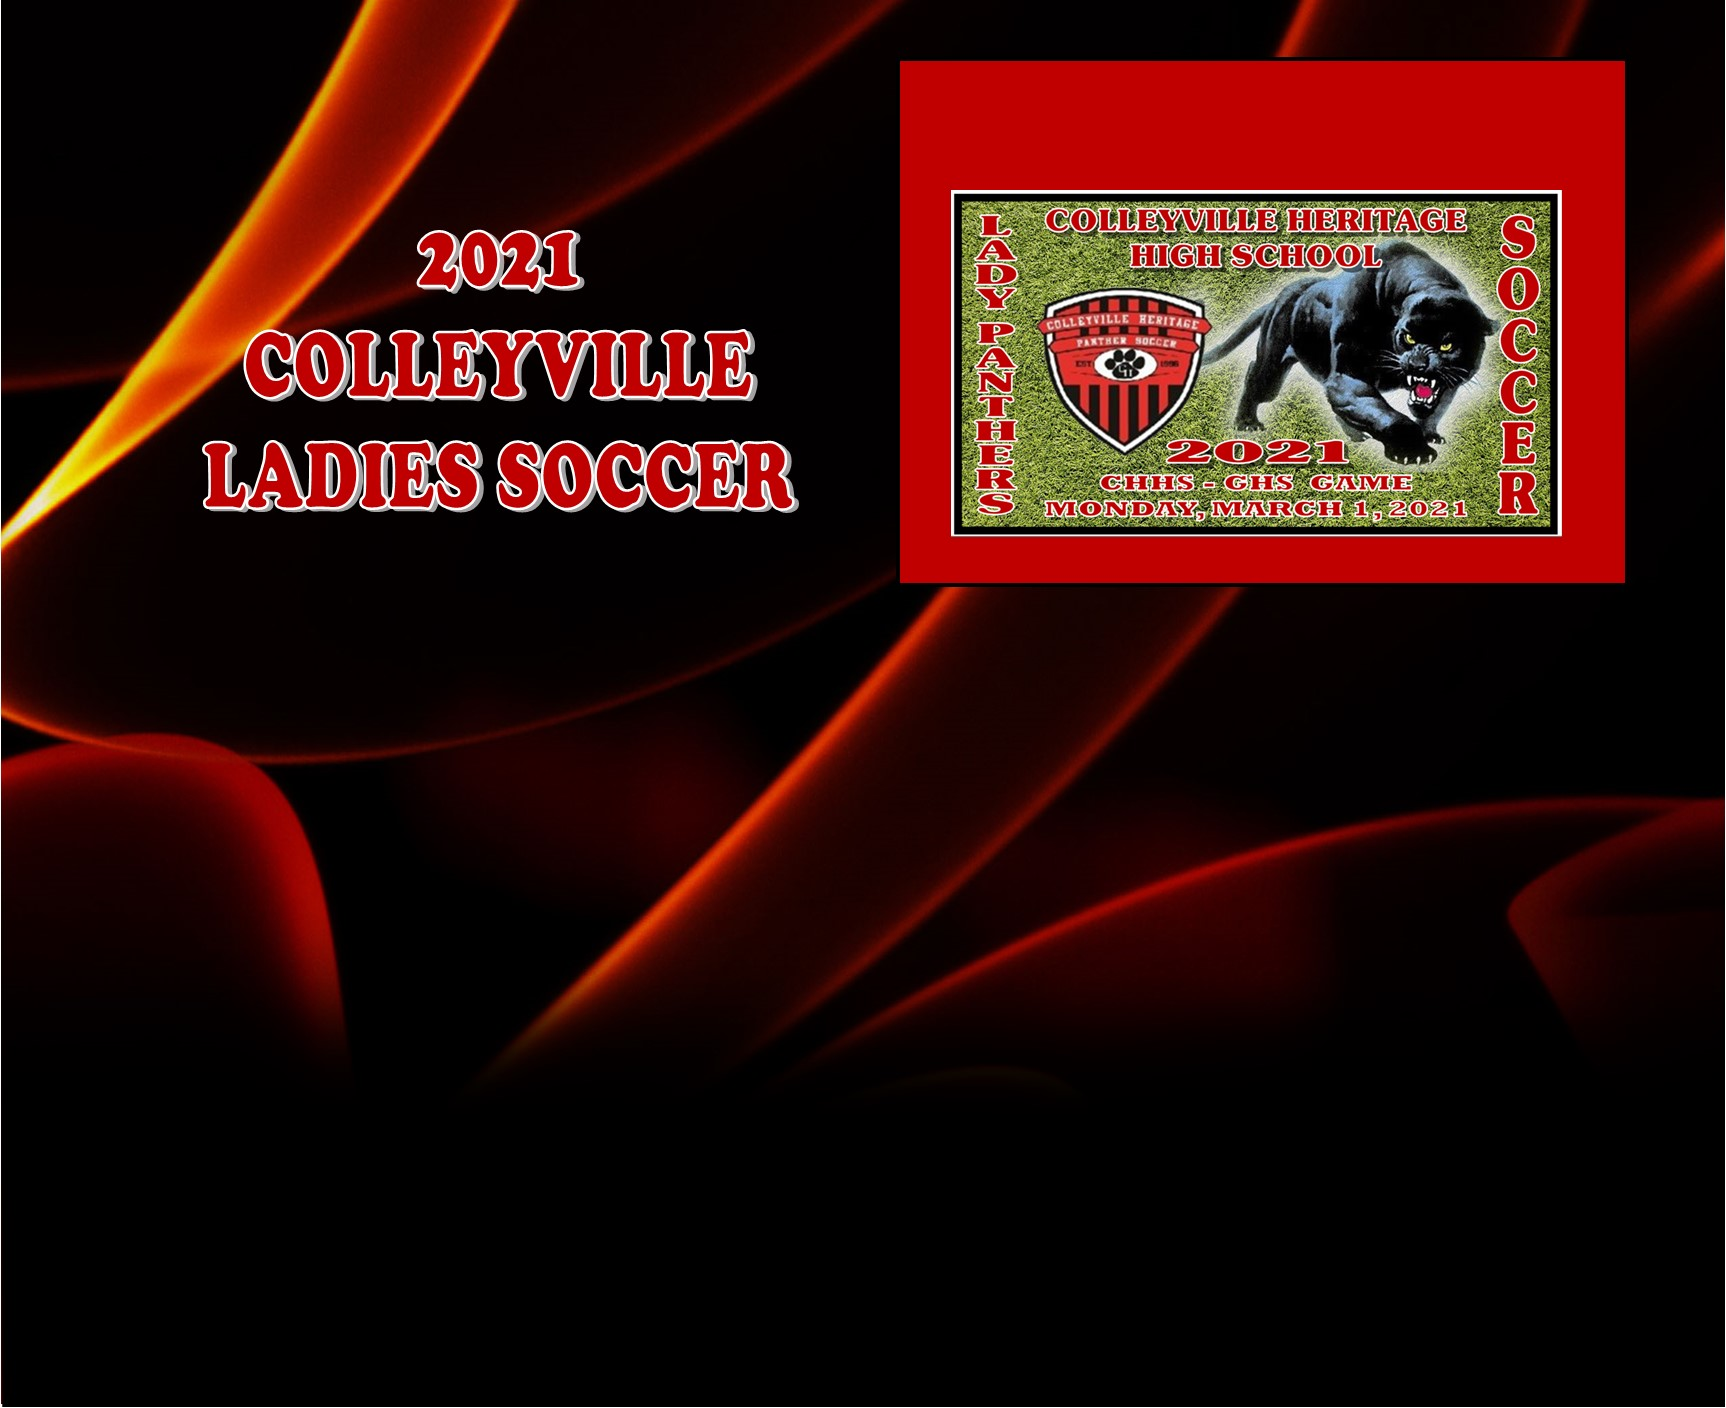 GCISD Ladies Soccer: Colleyville Panthers Fall to the Grapevine Mustangs 2-3